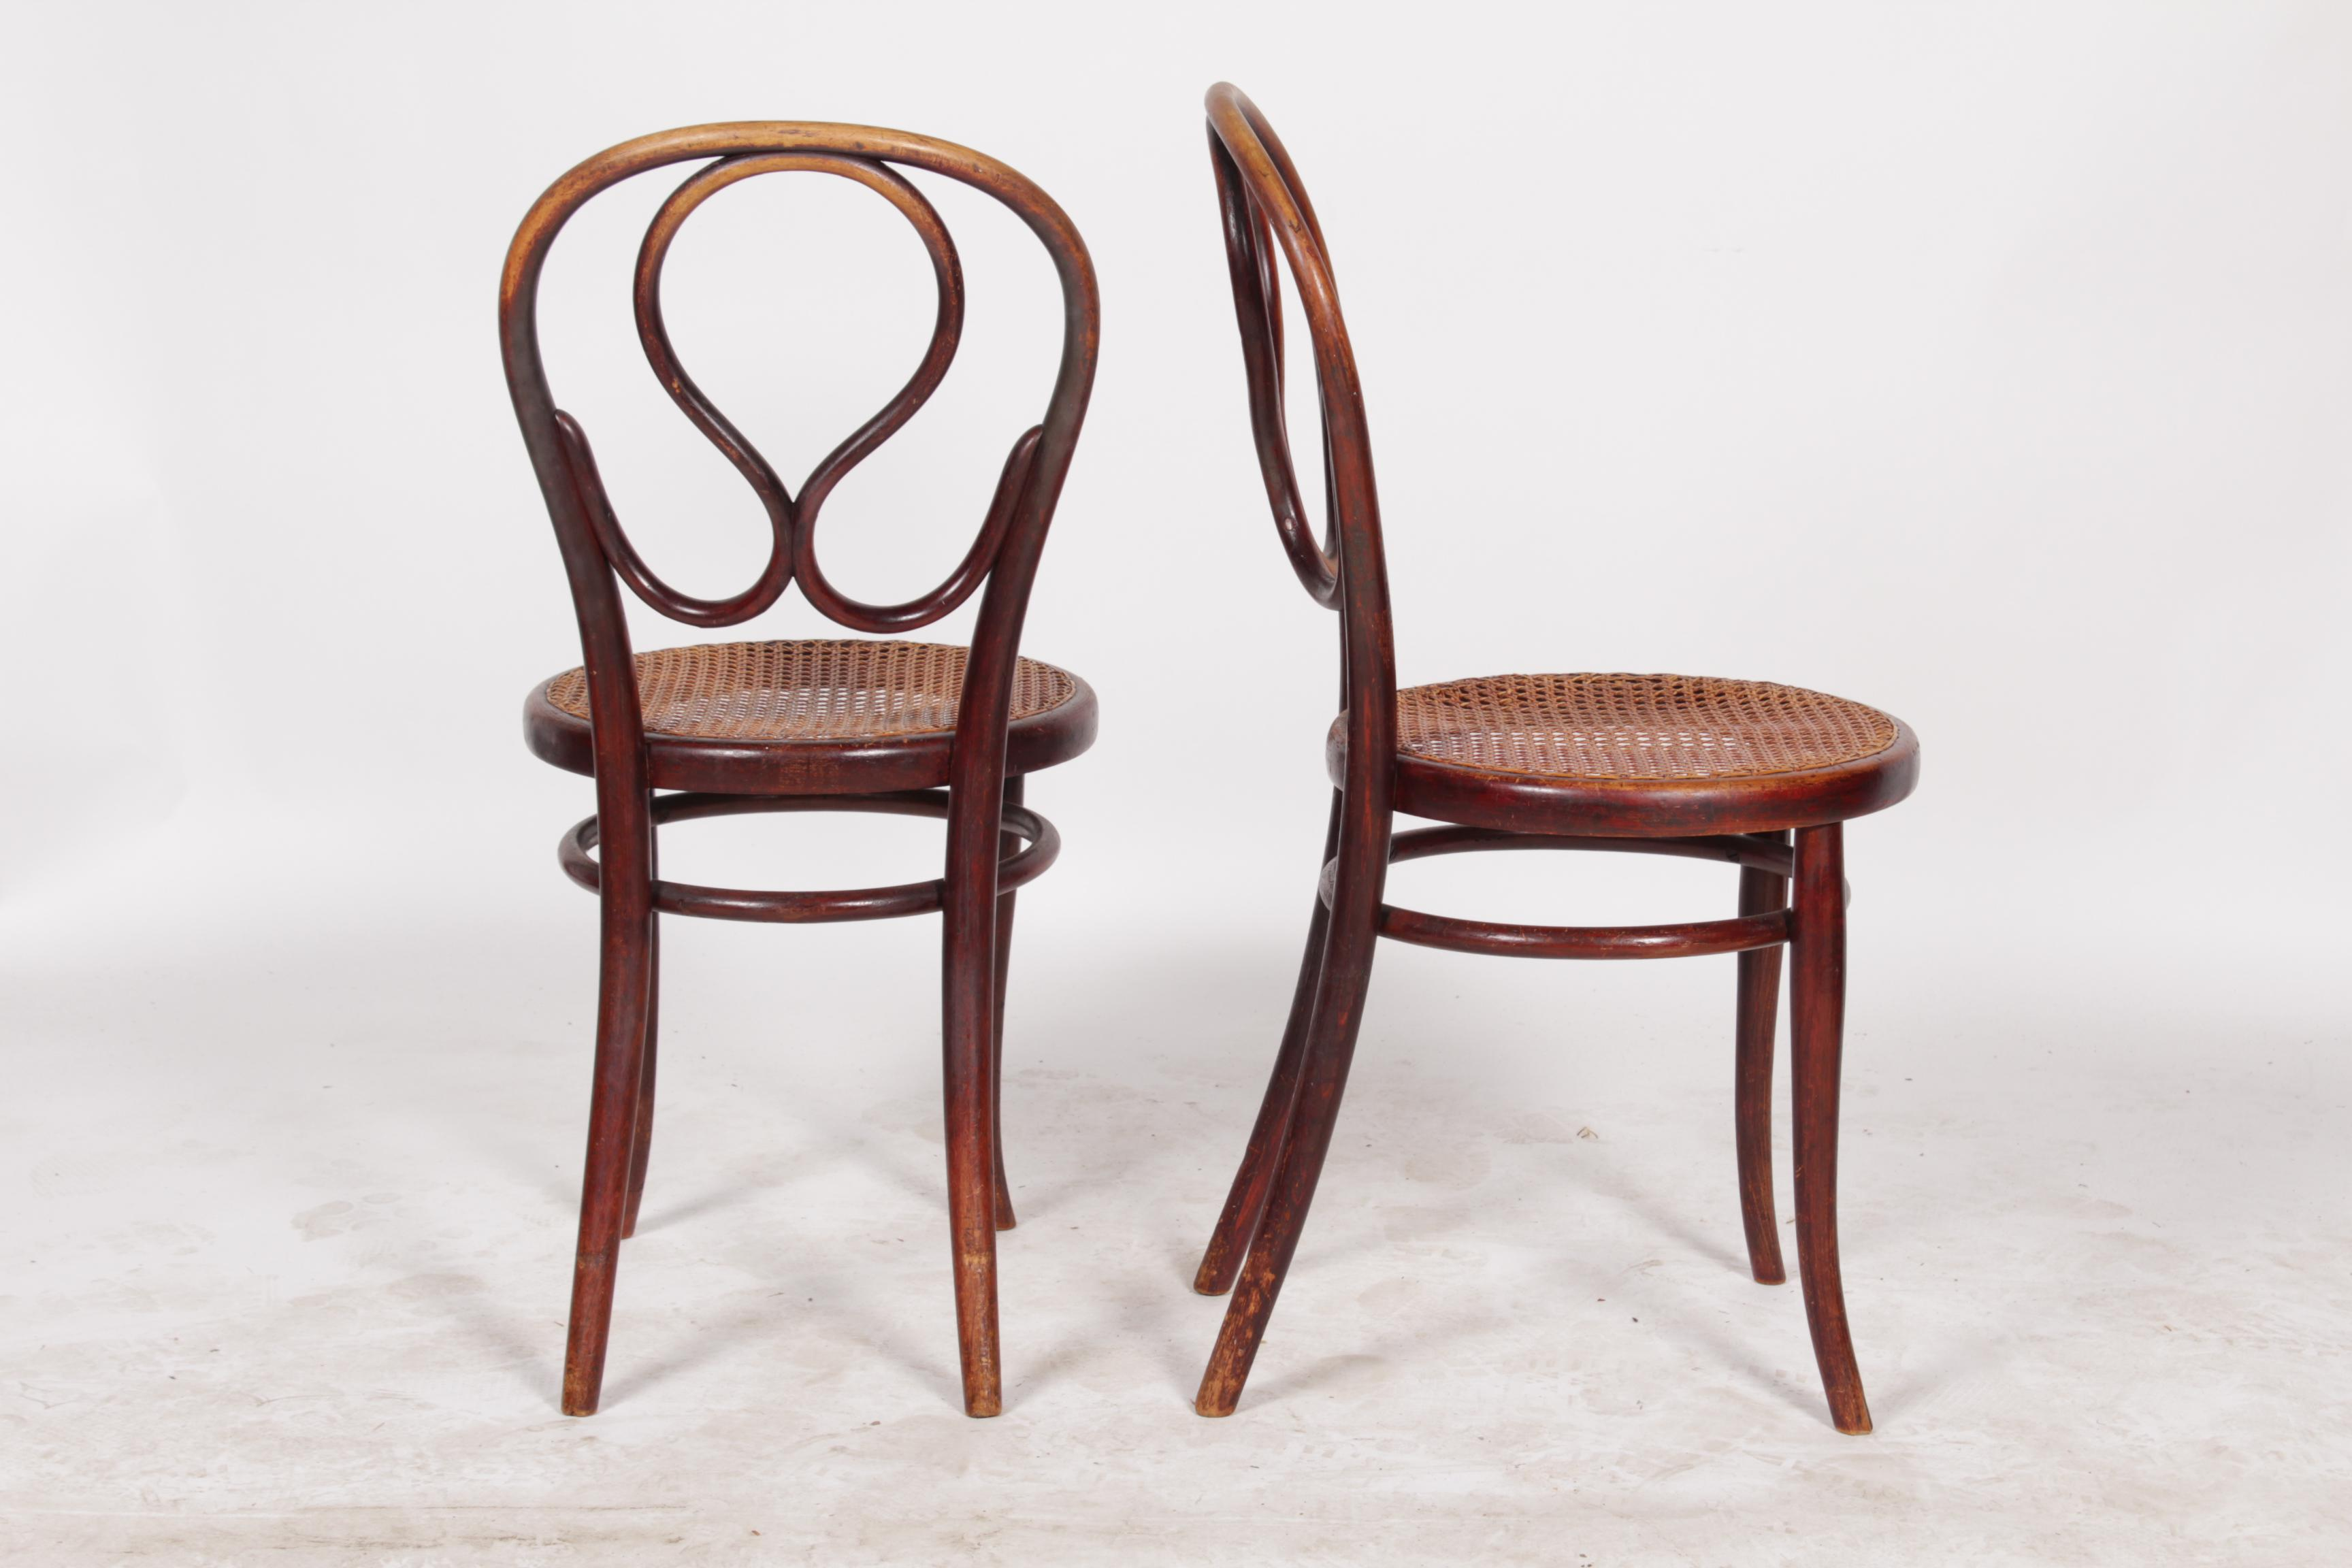 1920s thonet labeled bentwood chairs a pair image 3 of 8